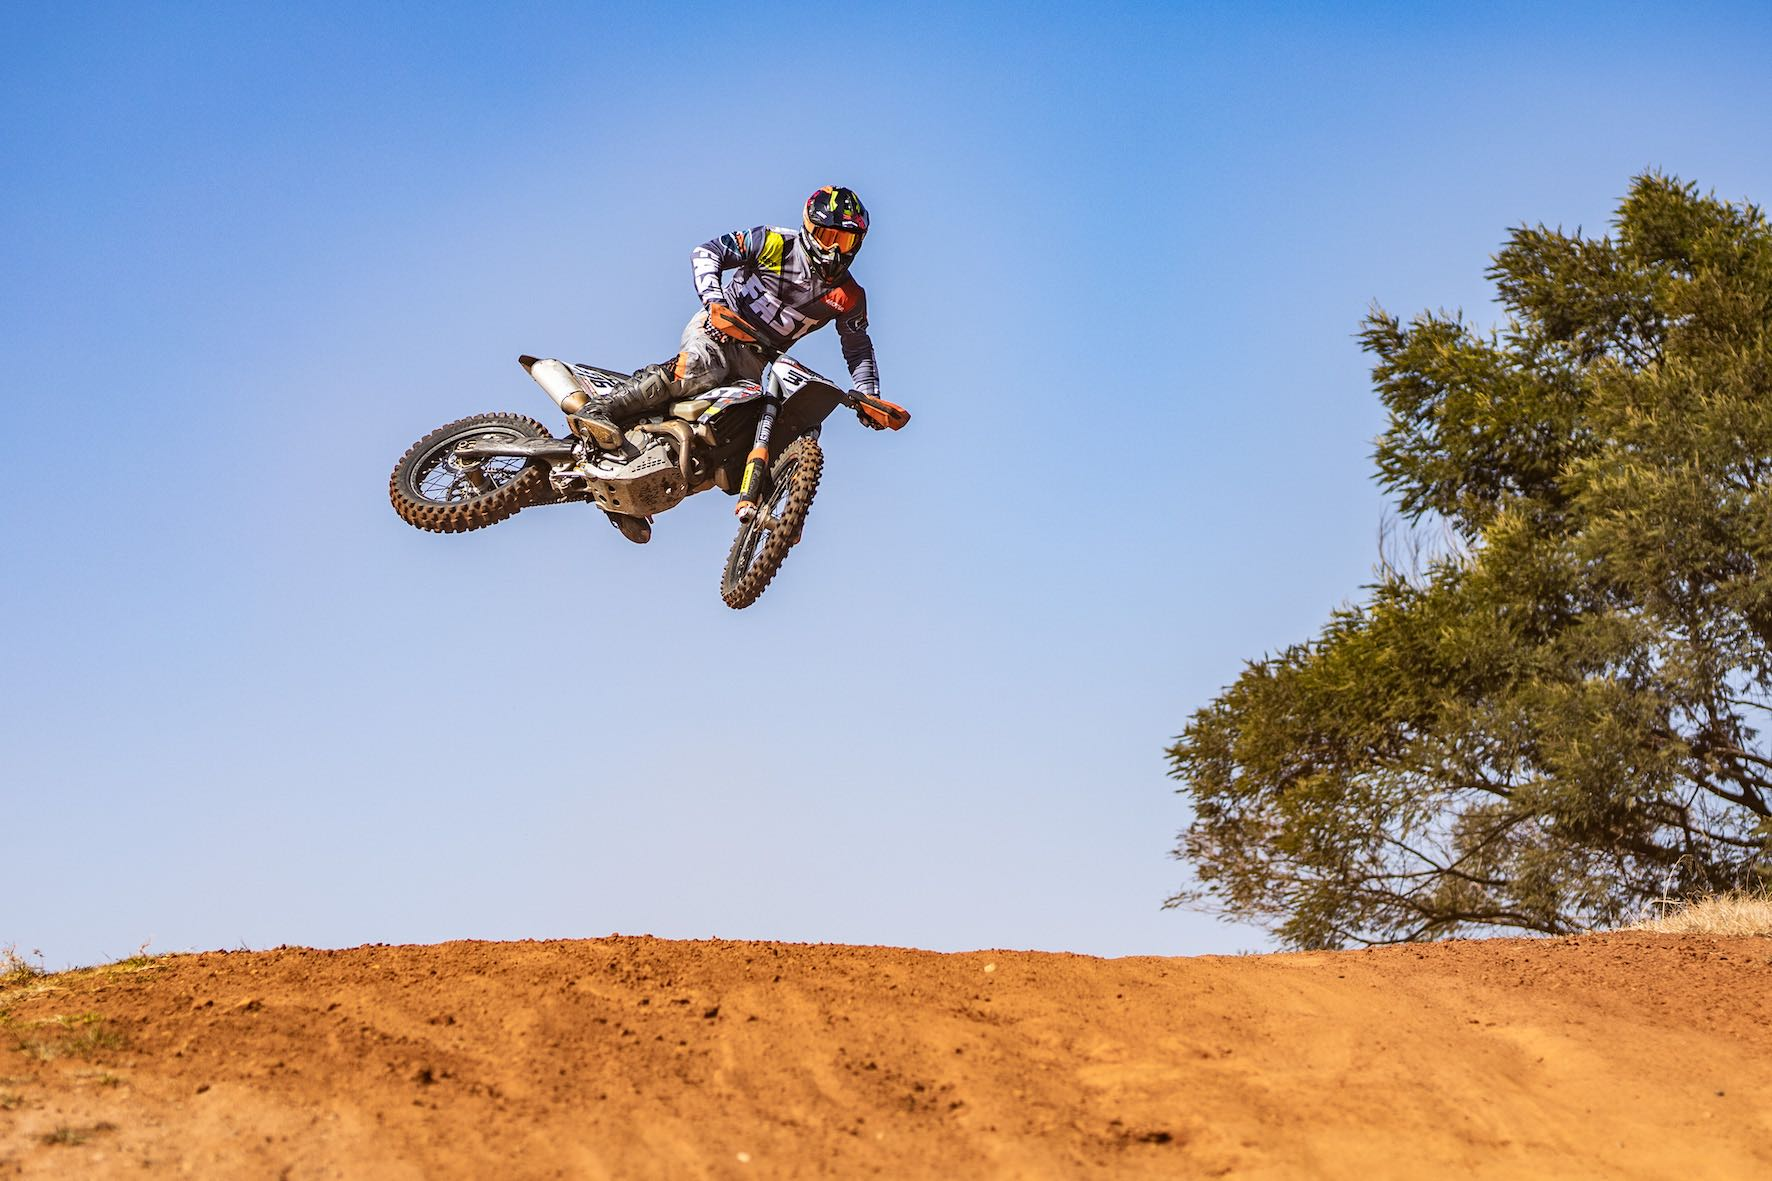 Ian Rall showing his skill on the motocross track